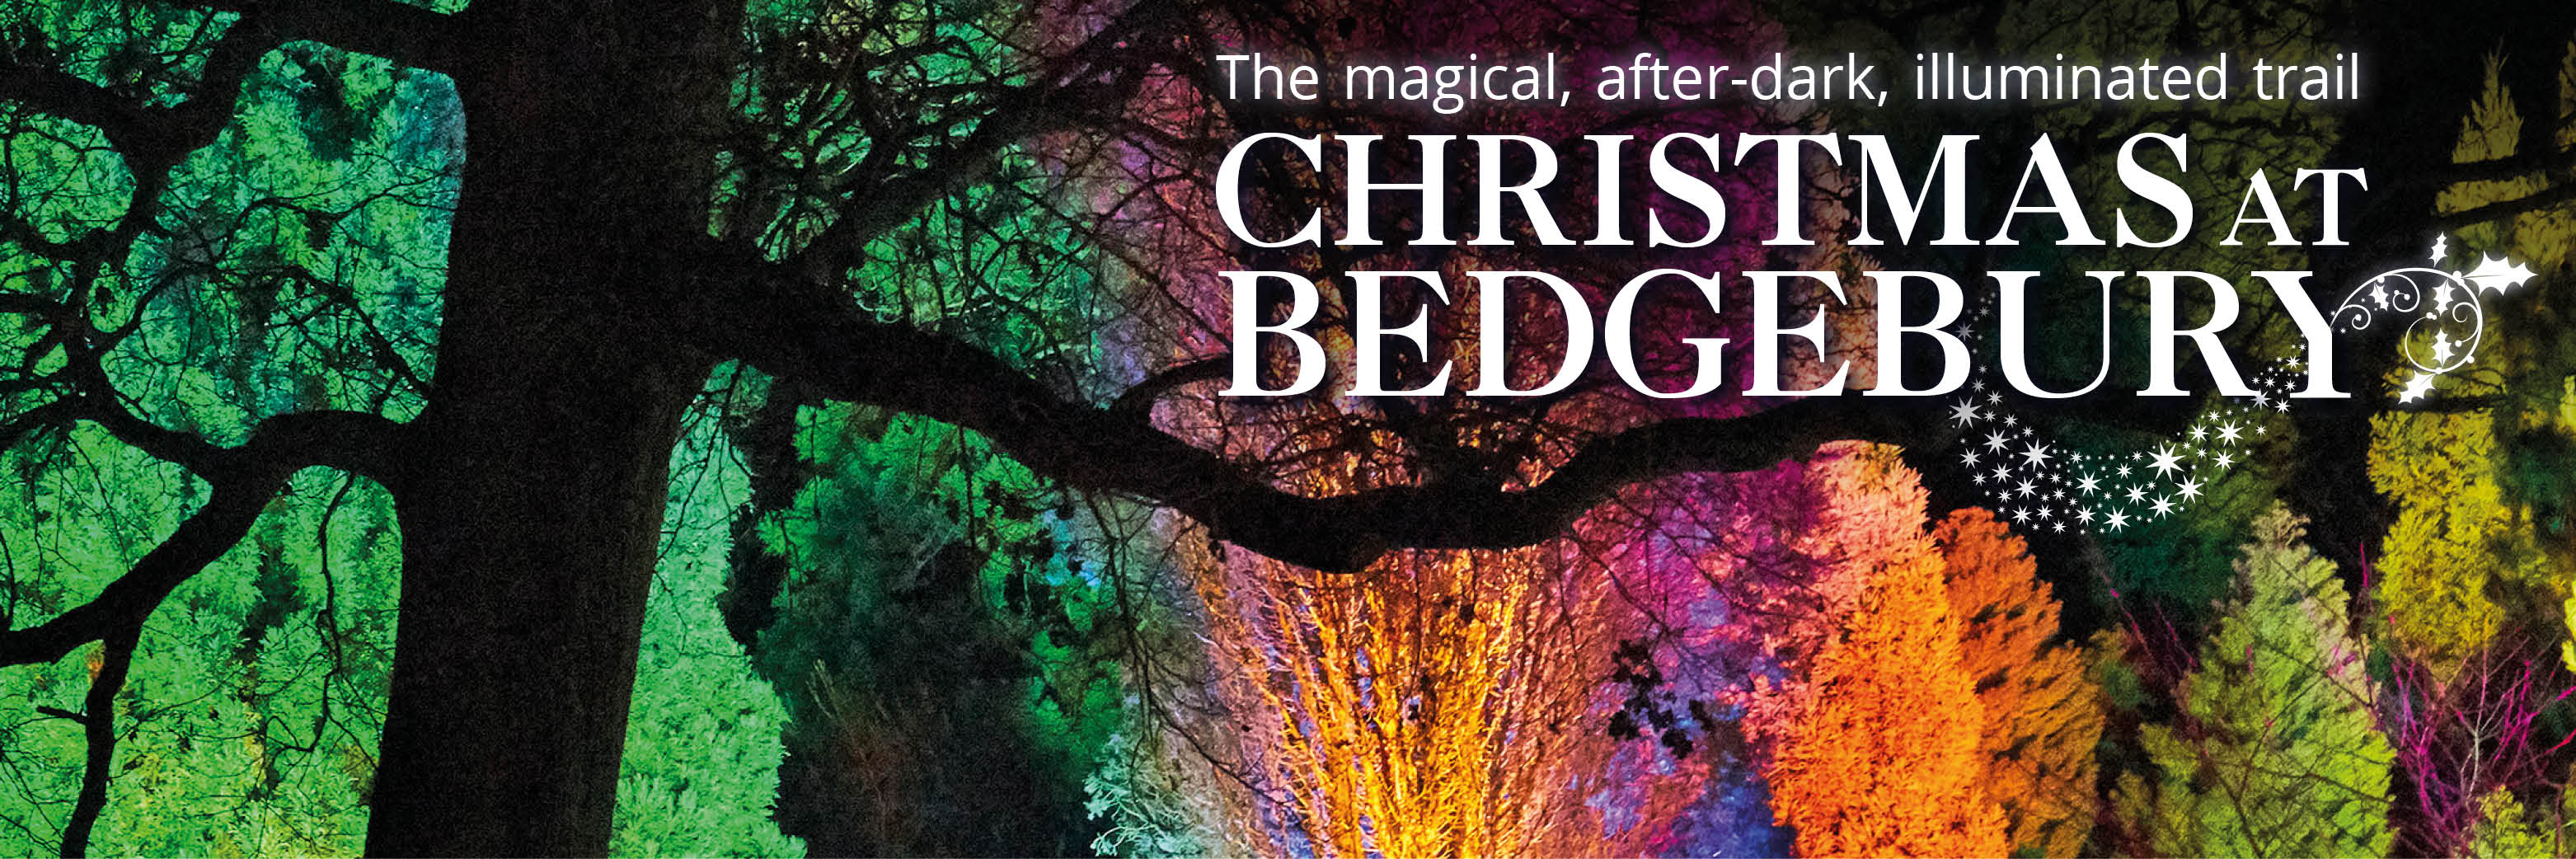 Christmas At Bedgebury Forestry England